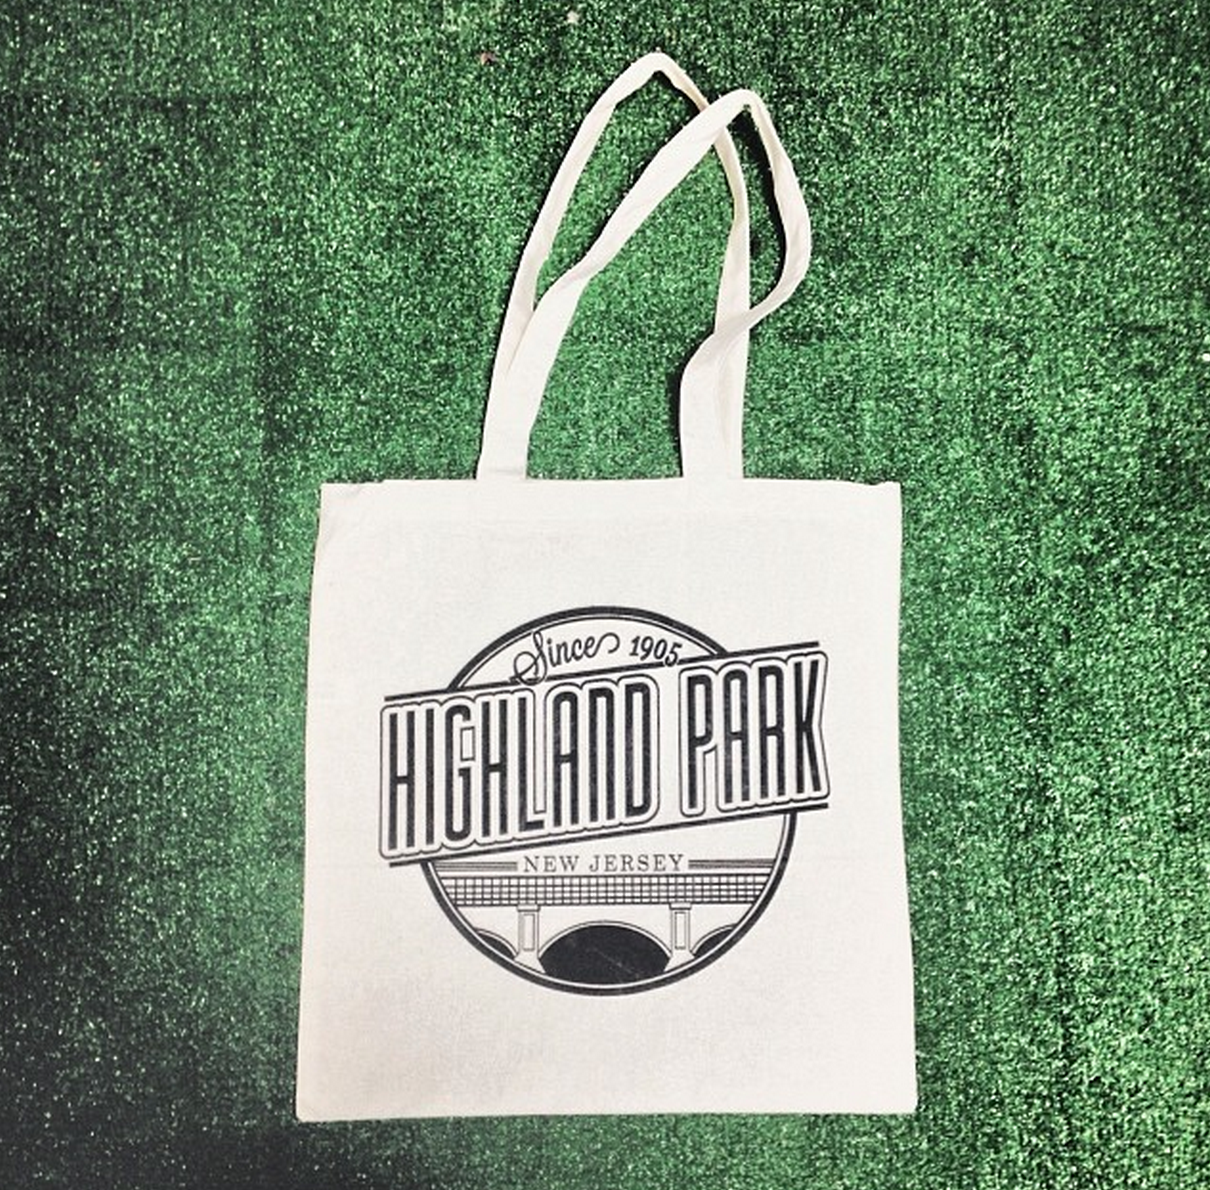 HIGHLAND PARK TOTE BAG   We created the Highland Park logo to pay homage to Highland Park, NJ's roots as a turn of the century town built on the heels of industry. Its classic design has proven to be a favorite to Highland Park residents, and is always being printed on your new favorite tee/hoodie.  We offer the same bags in a variety of colors for custom print jobs!